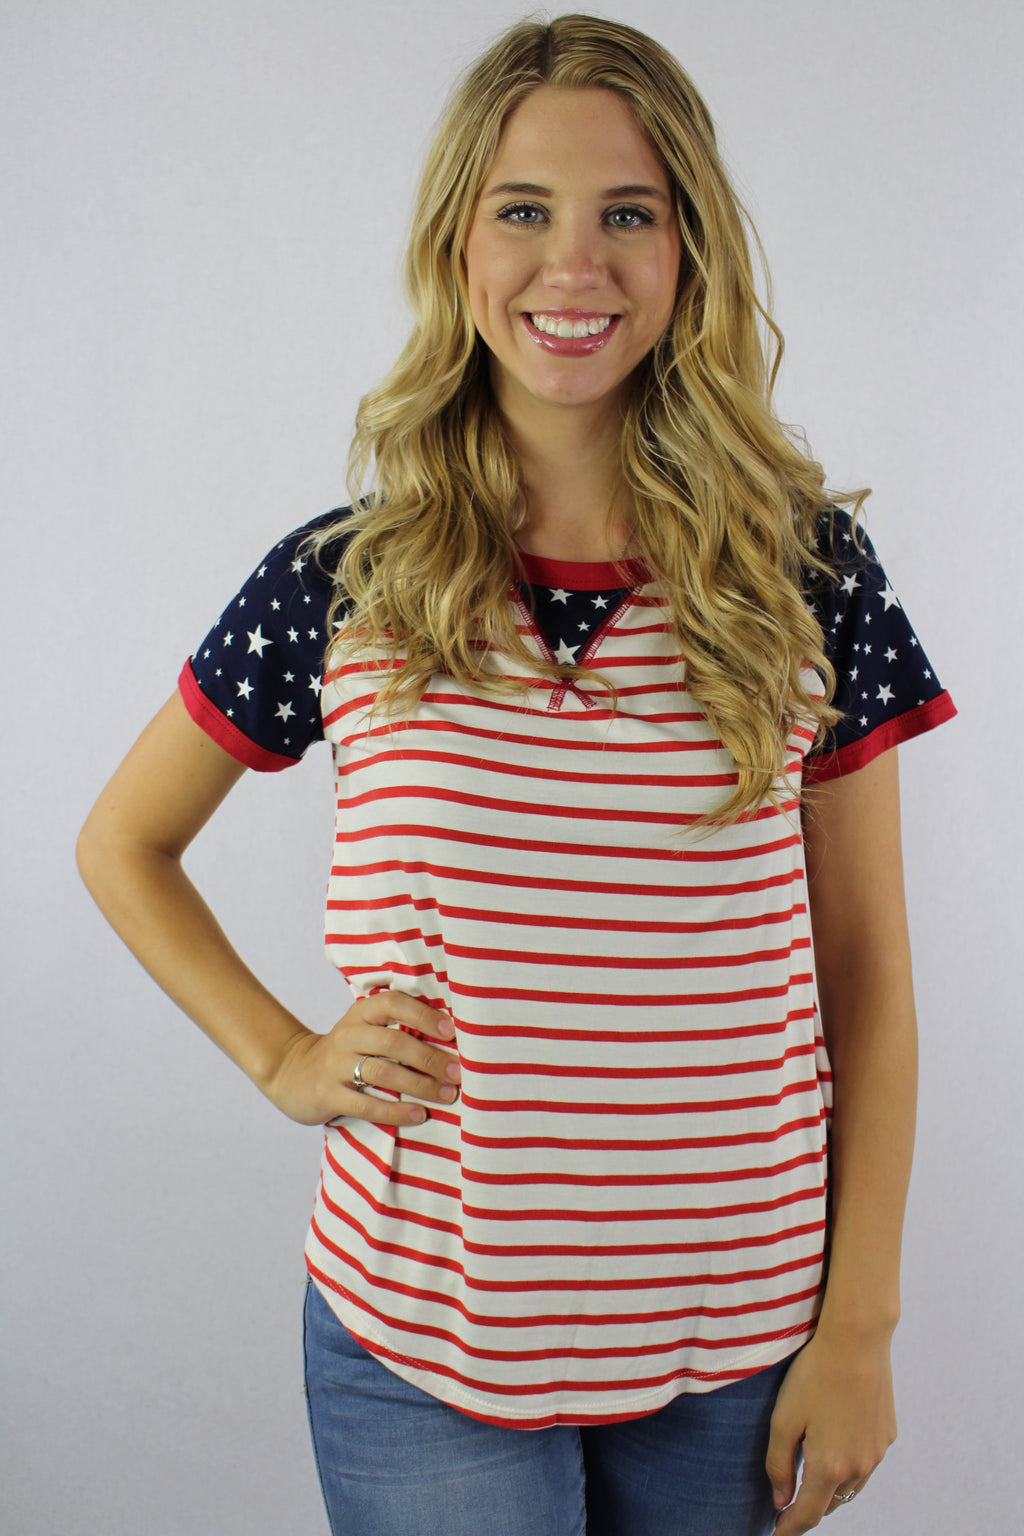 Women's Short Sleeve Stripe Top with Stars